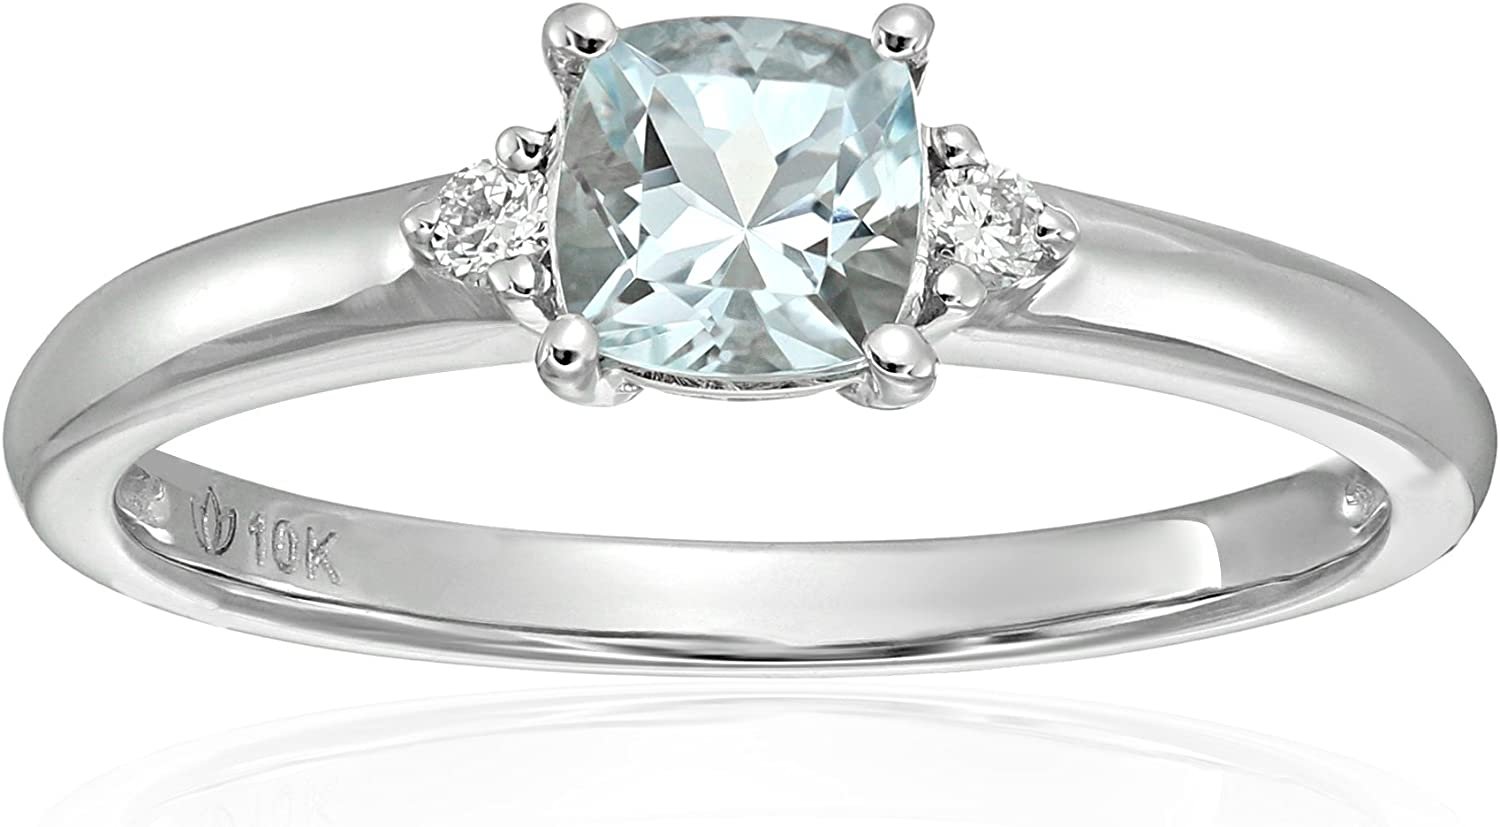 10k White Gold Aquamarine and Diamond Accented Classic Solitaire Engagement Ring, Size 7